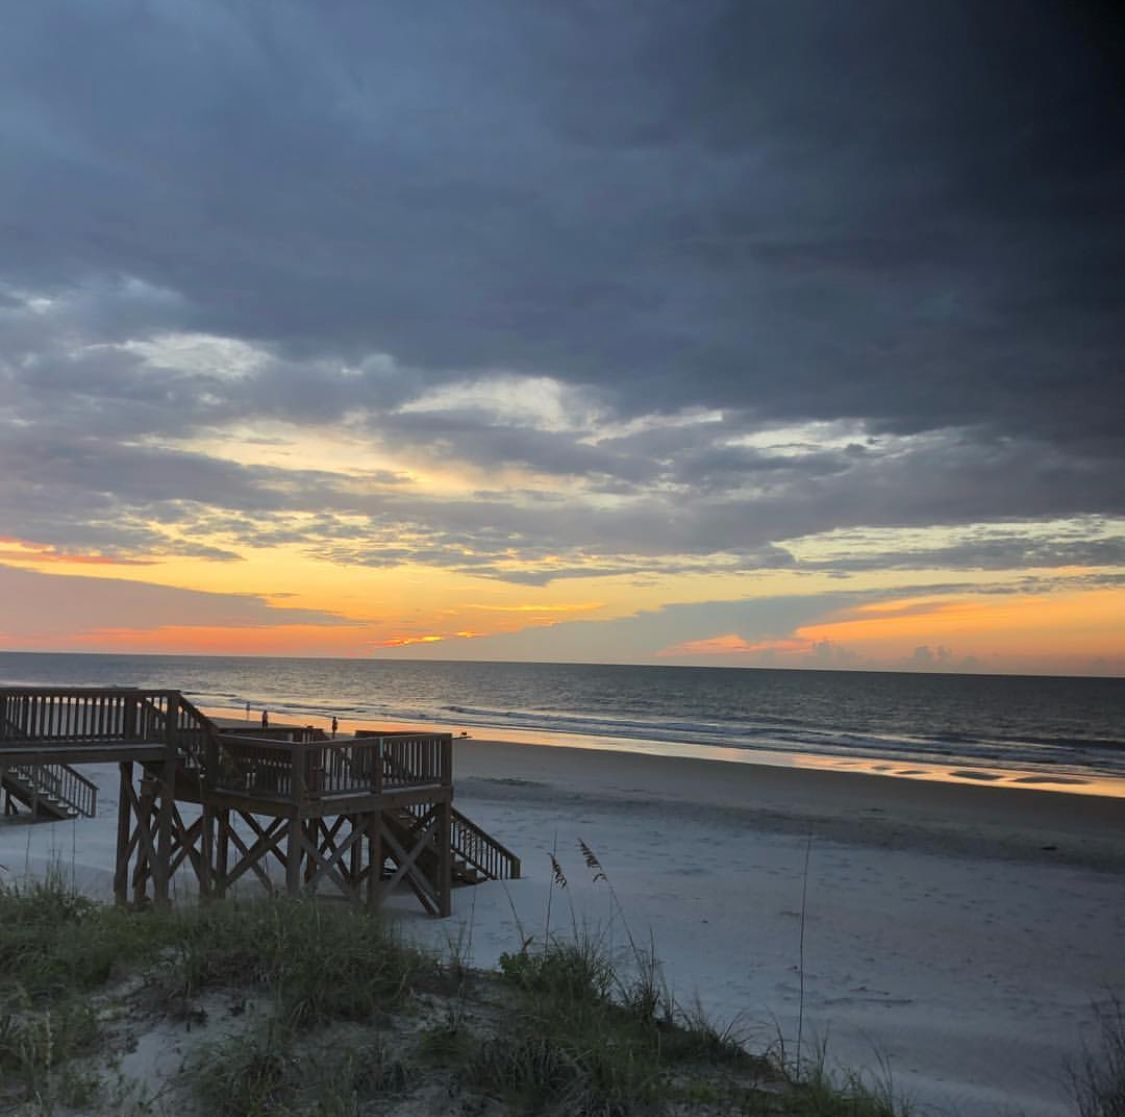 Pawleys Island Beach: Pawleys Island, SC. (With Images)